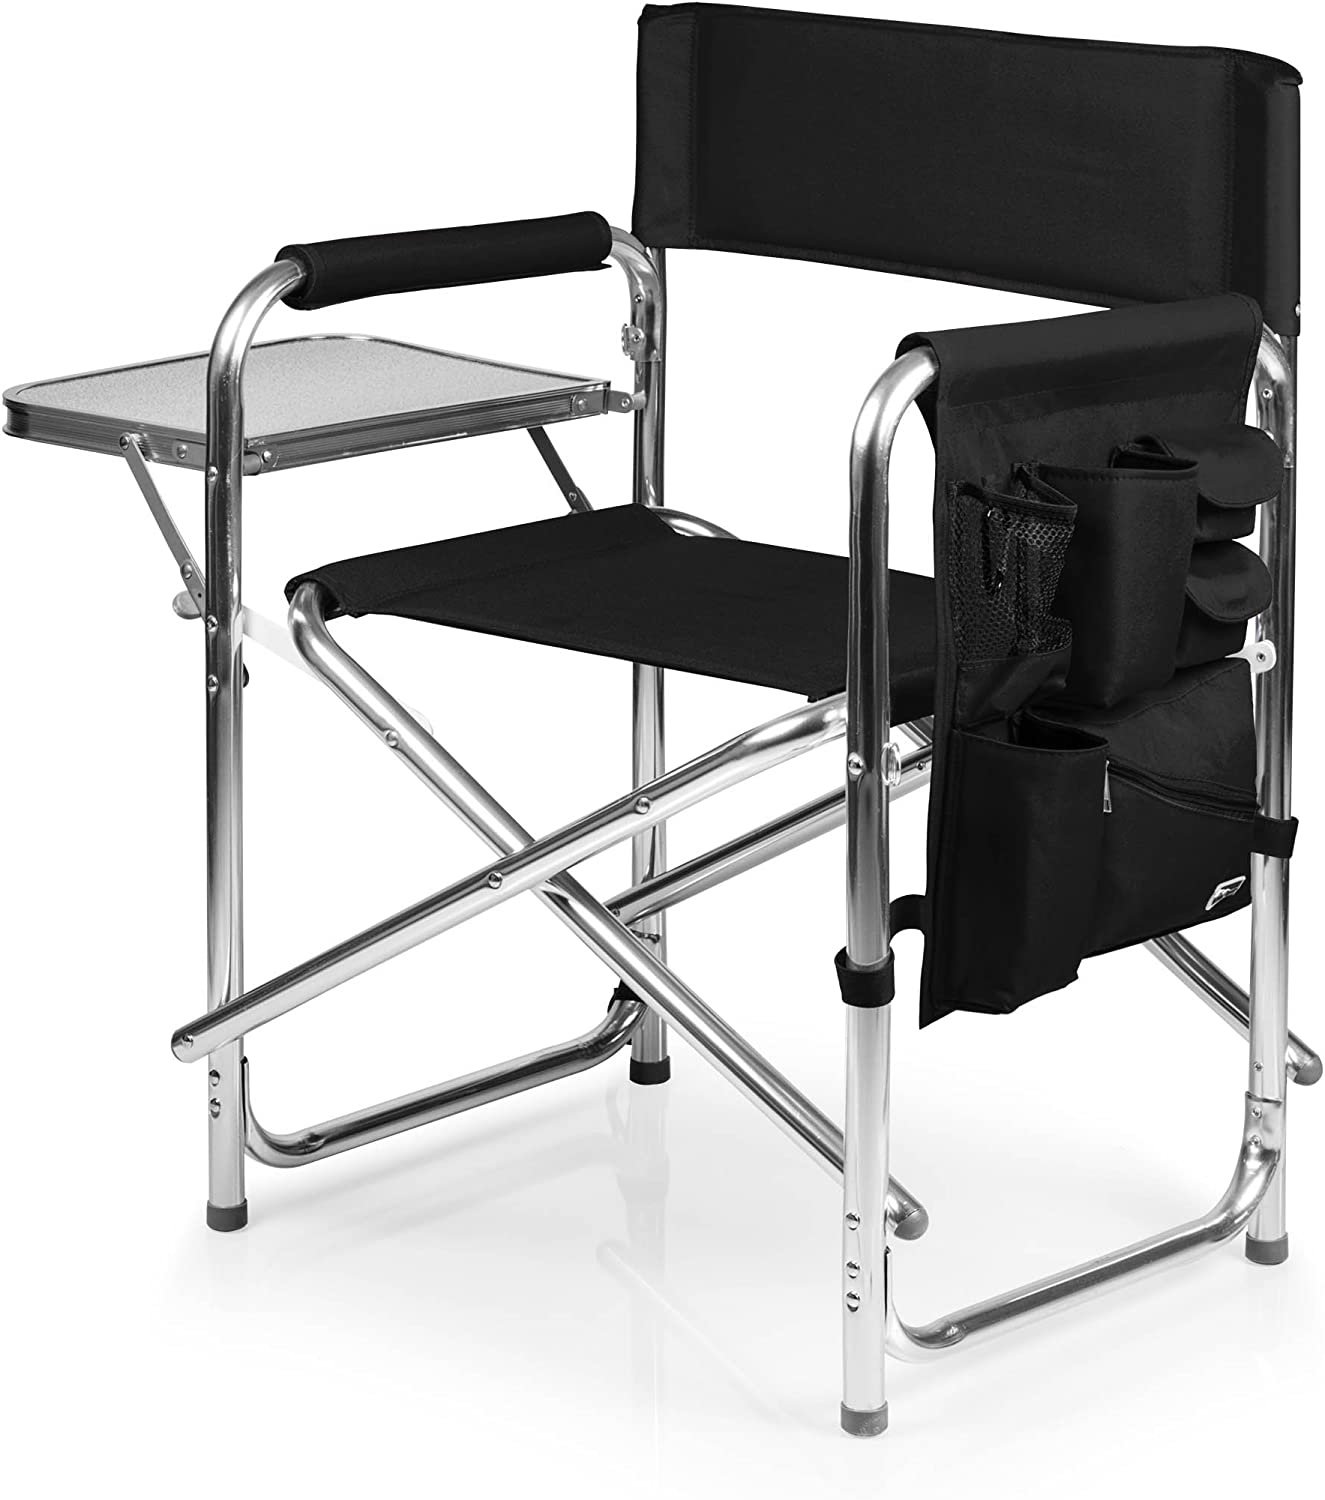 PICNIC TIME ONIVA a Picnic Time Brand Portable Sports Folding Chair